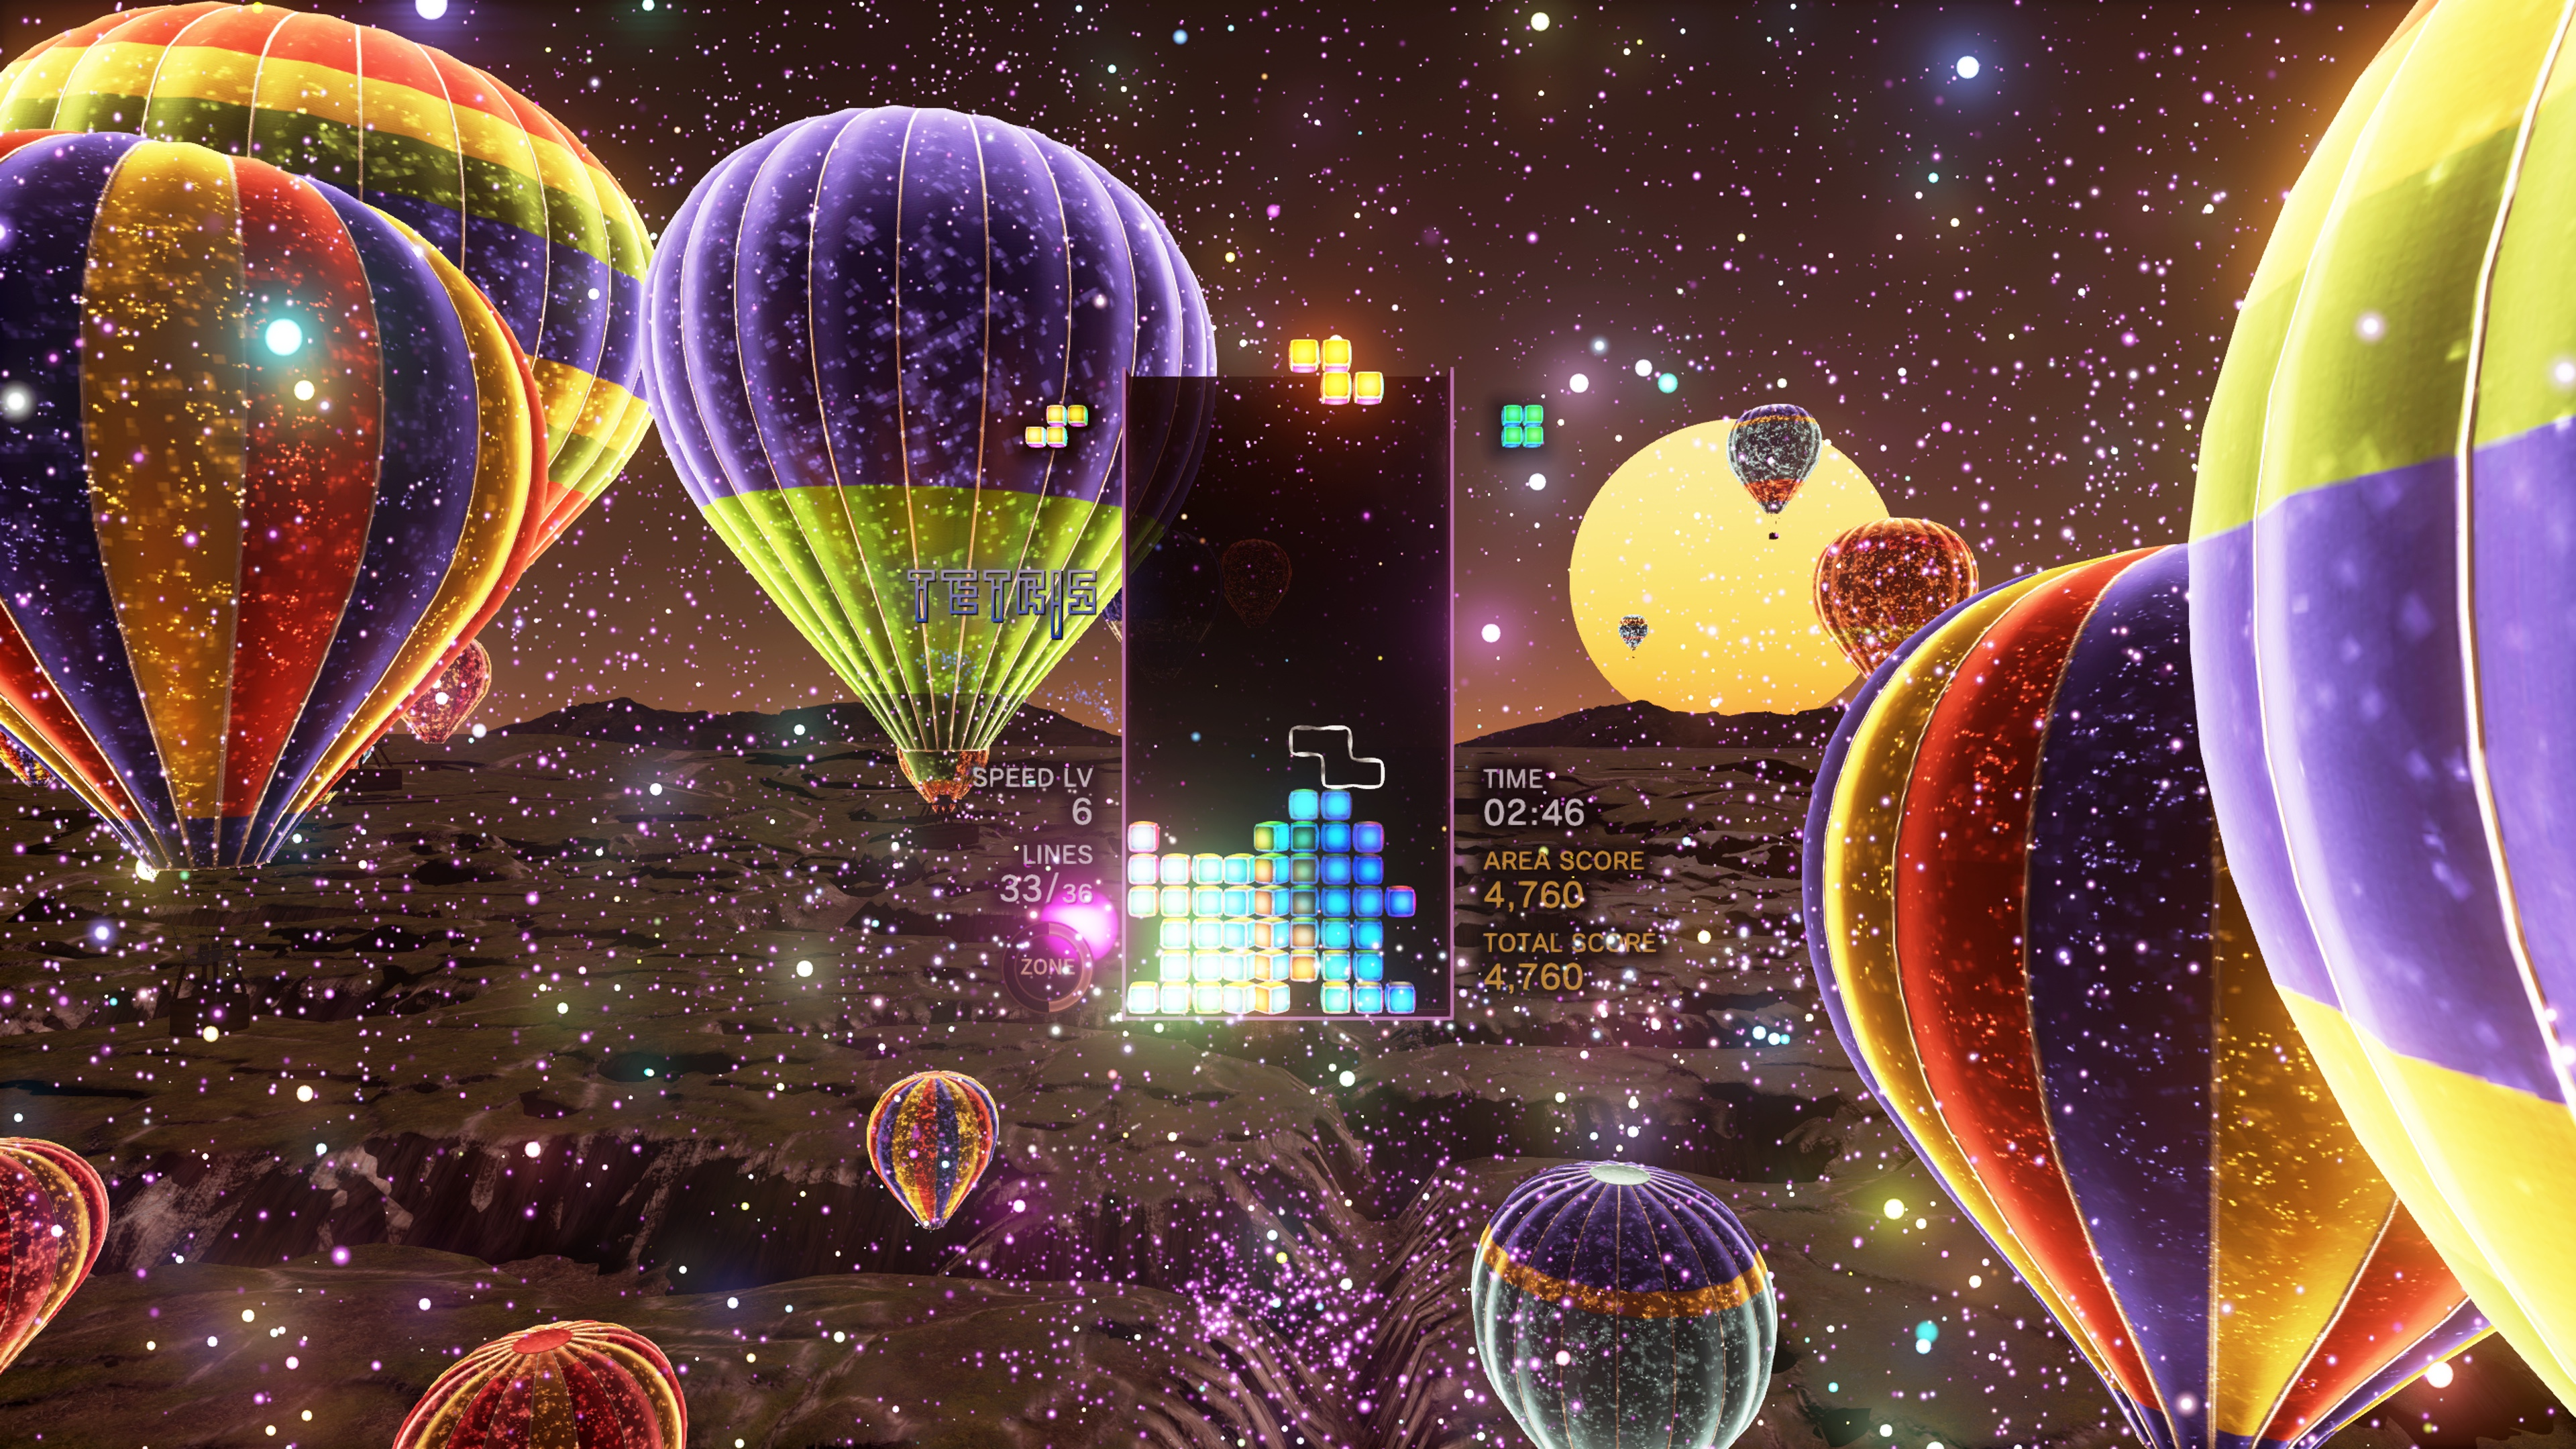 Tetris Effect is loaded with game modes designed to keep you